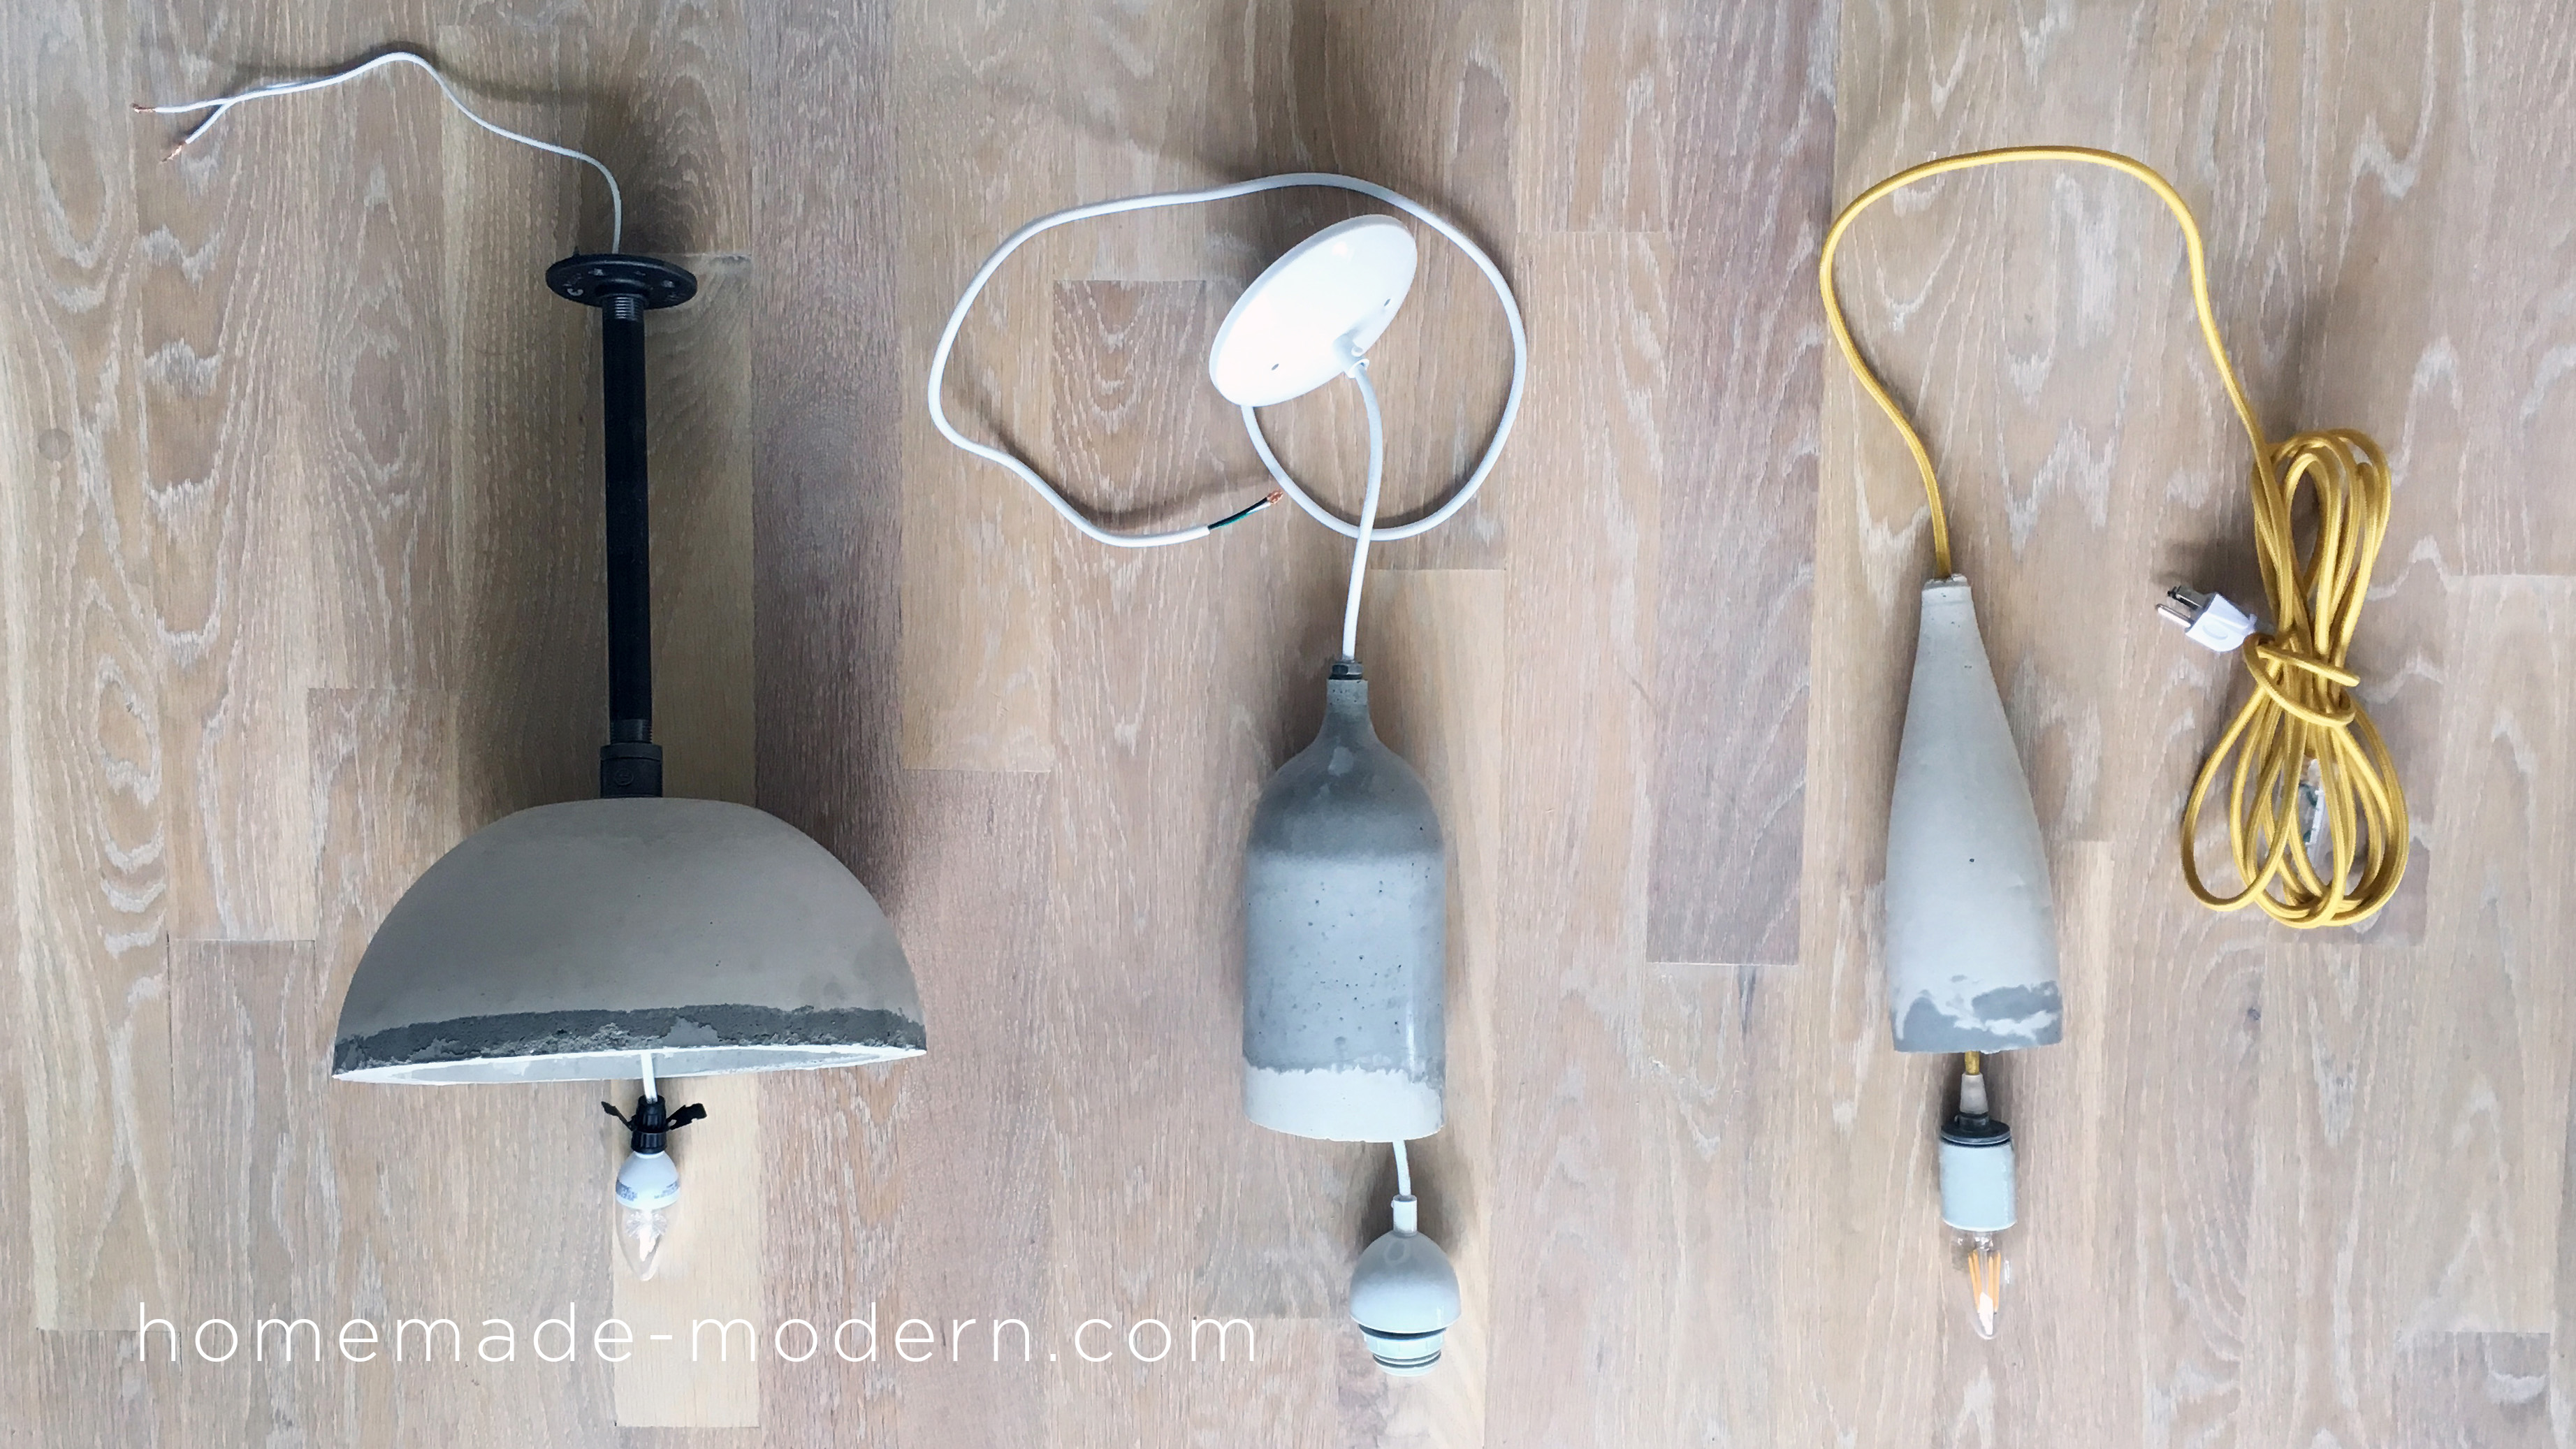 These DIY concrete lamps are easy and affordable to make. For more information go to HomeMade-Modern.com